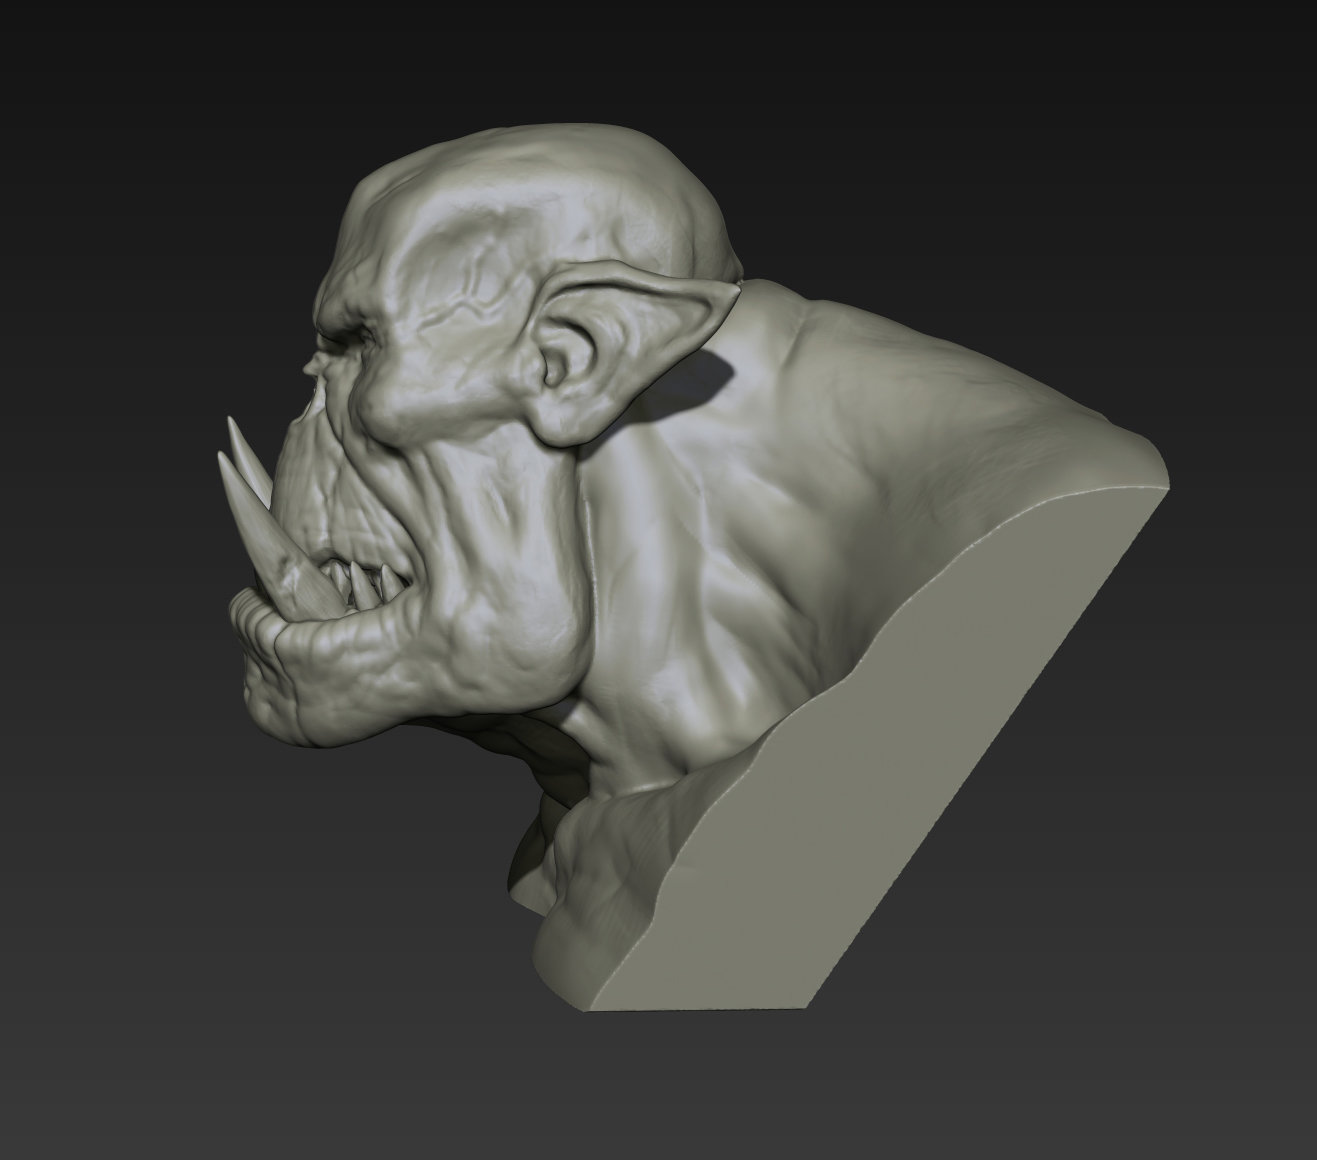 Toby hynes orc bust sketch 04